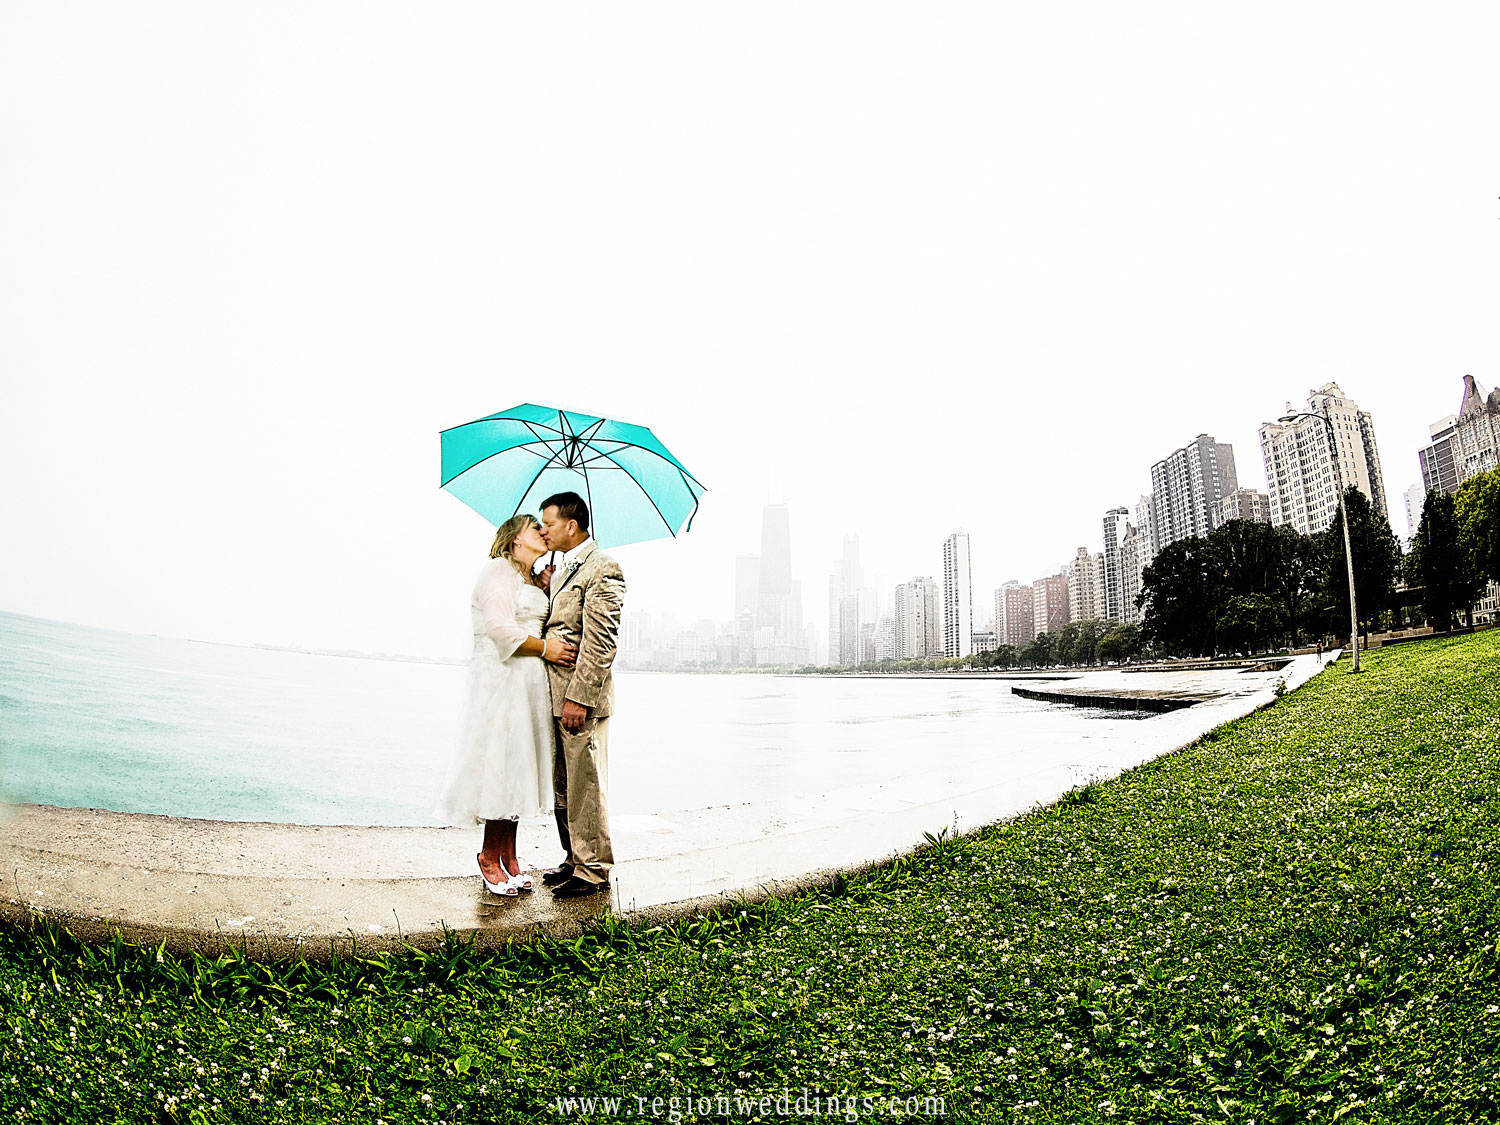 Haze overtakes the Chicago skyline as the bride and groom kiss along Oak Street Beach in Chicago.